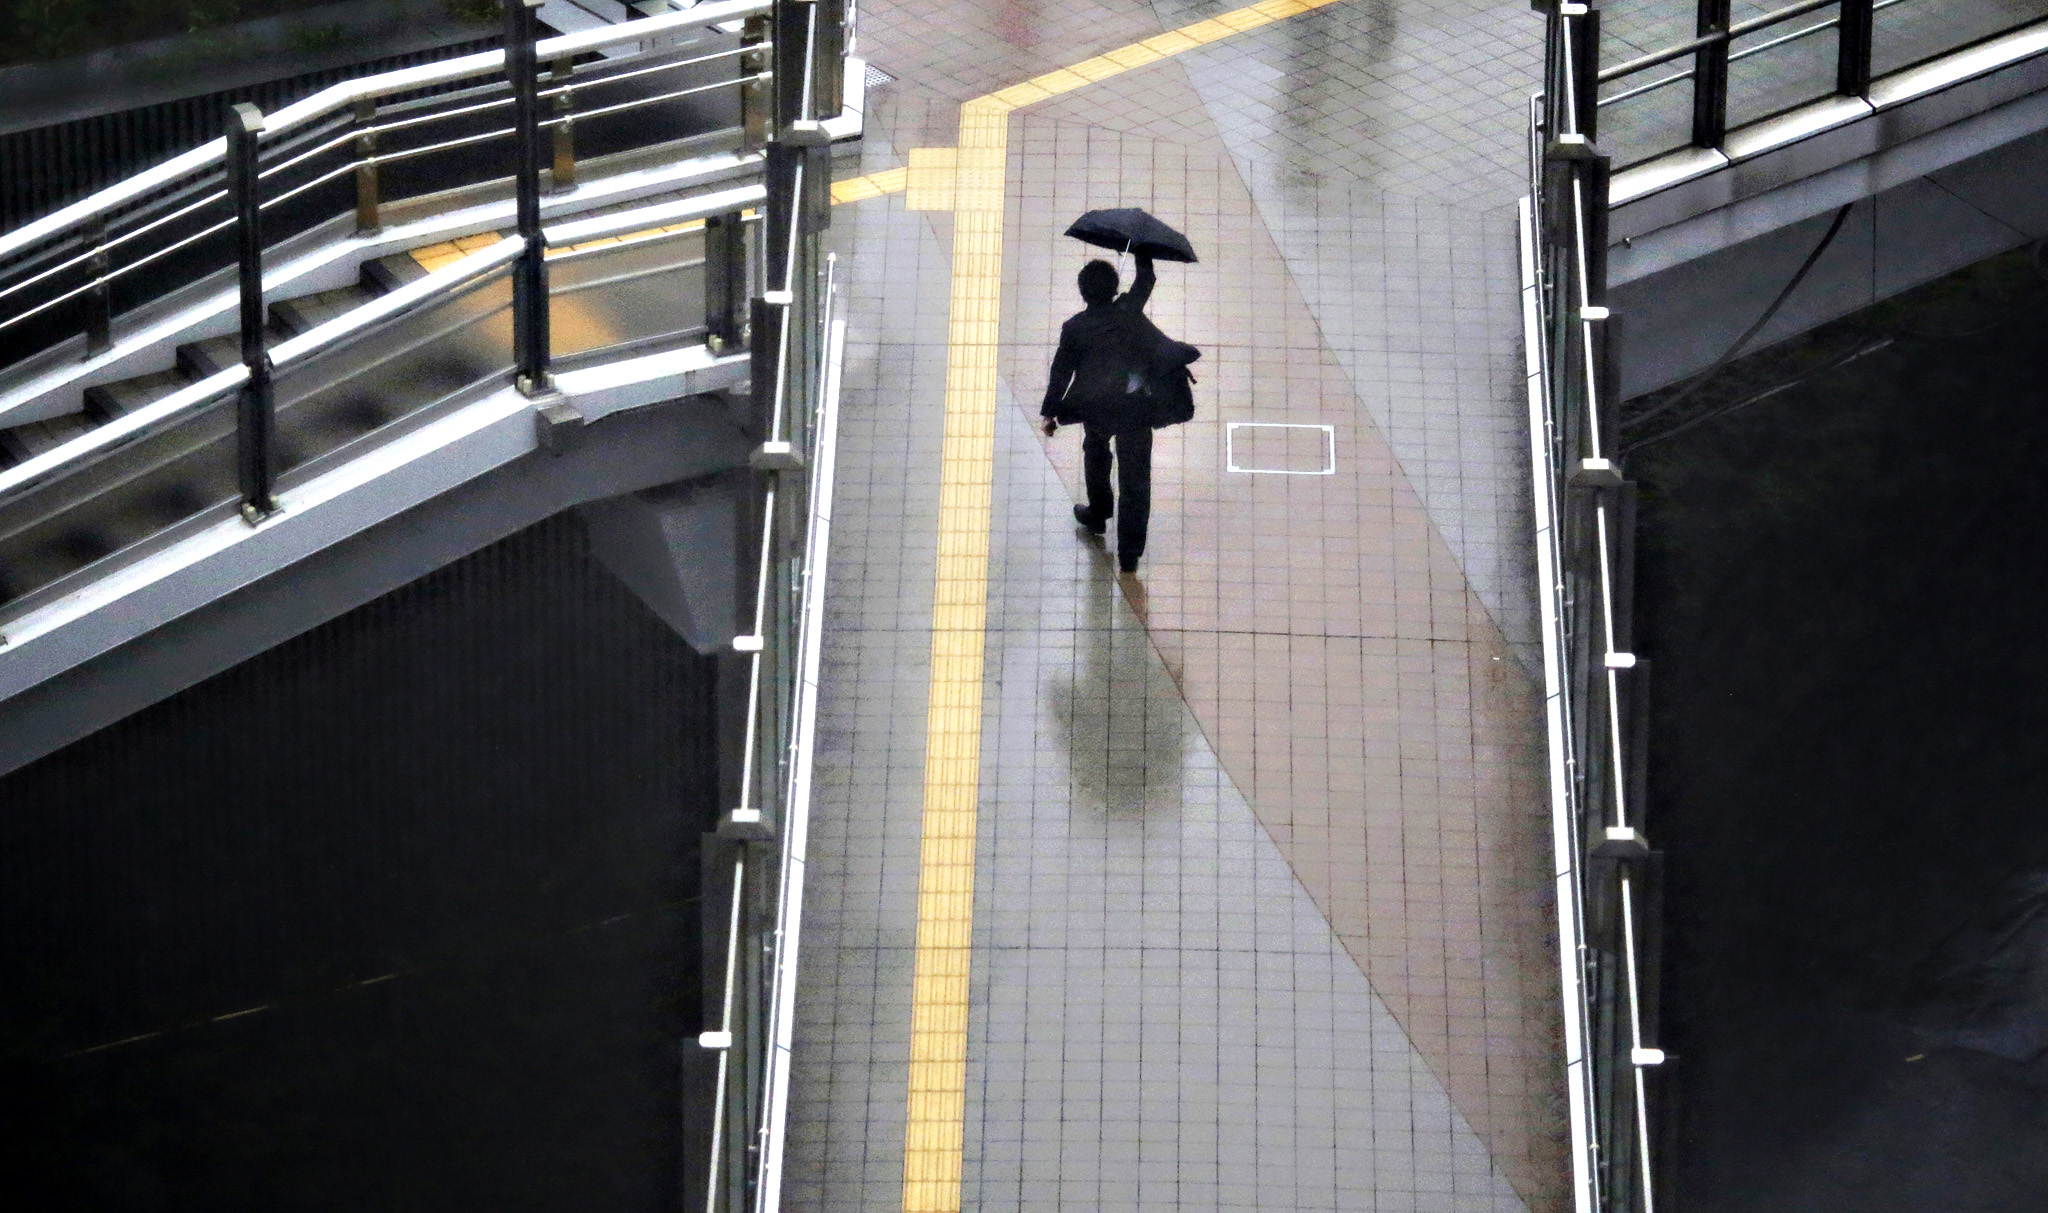 A man struggles to hold an umbrella in heavy rain at a business district in Tokyo Wednesday, Sept. 9, 2015. Heavy rain caused by a typhoon passing through central Japan hit the Tokyo metropolitan area in the day